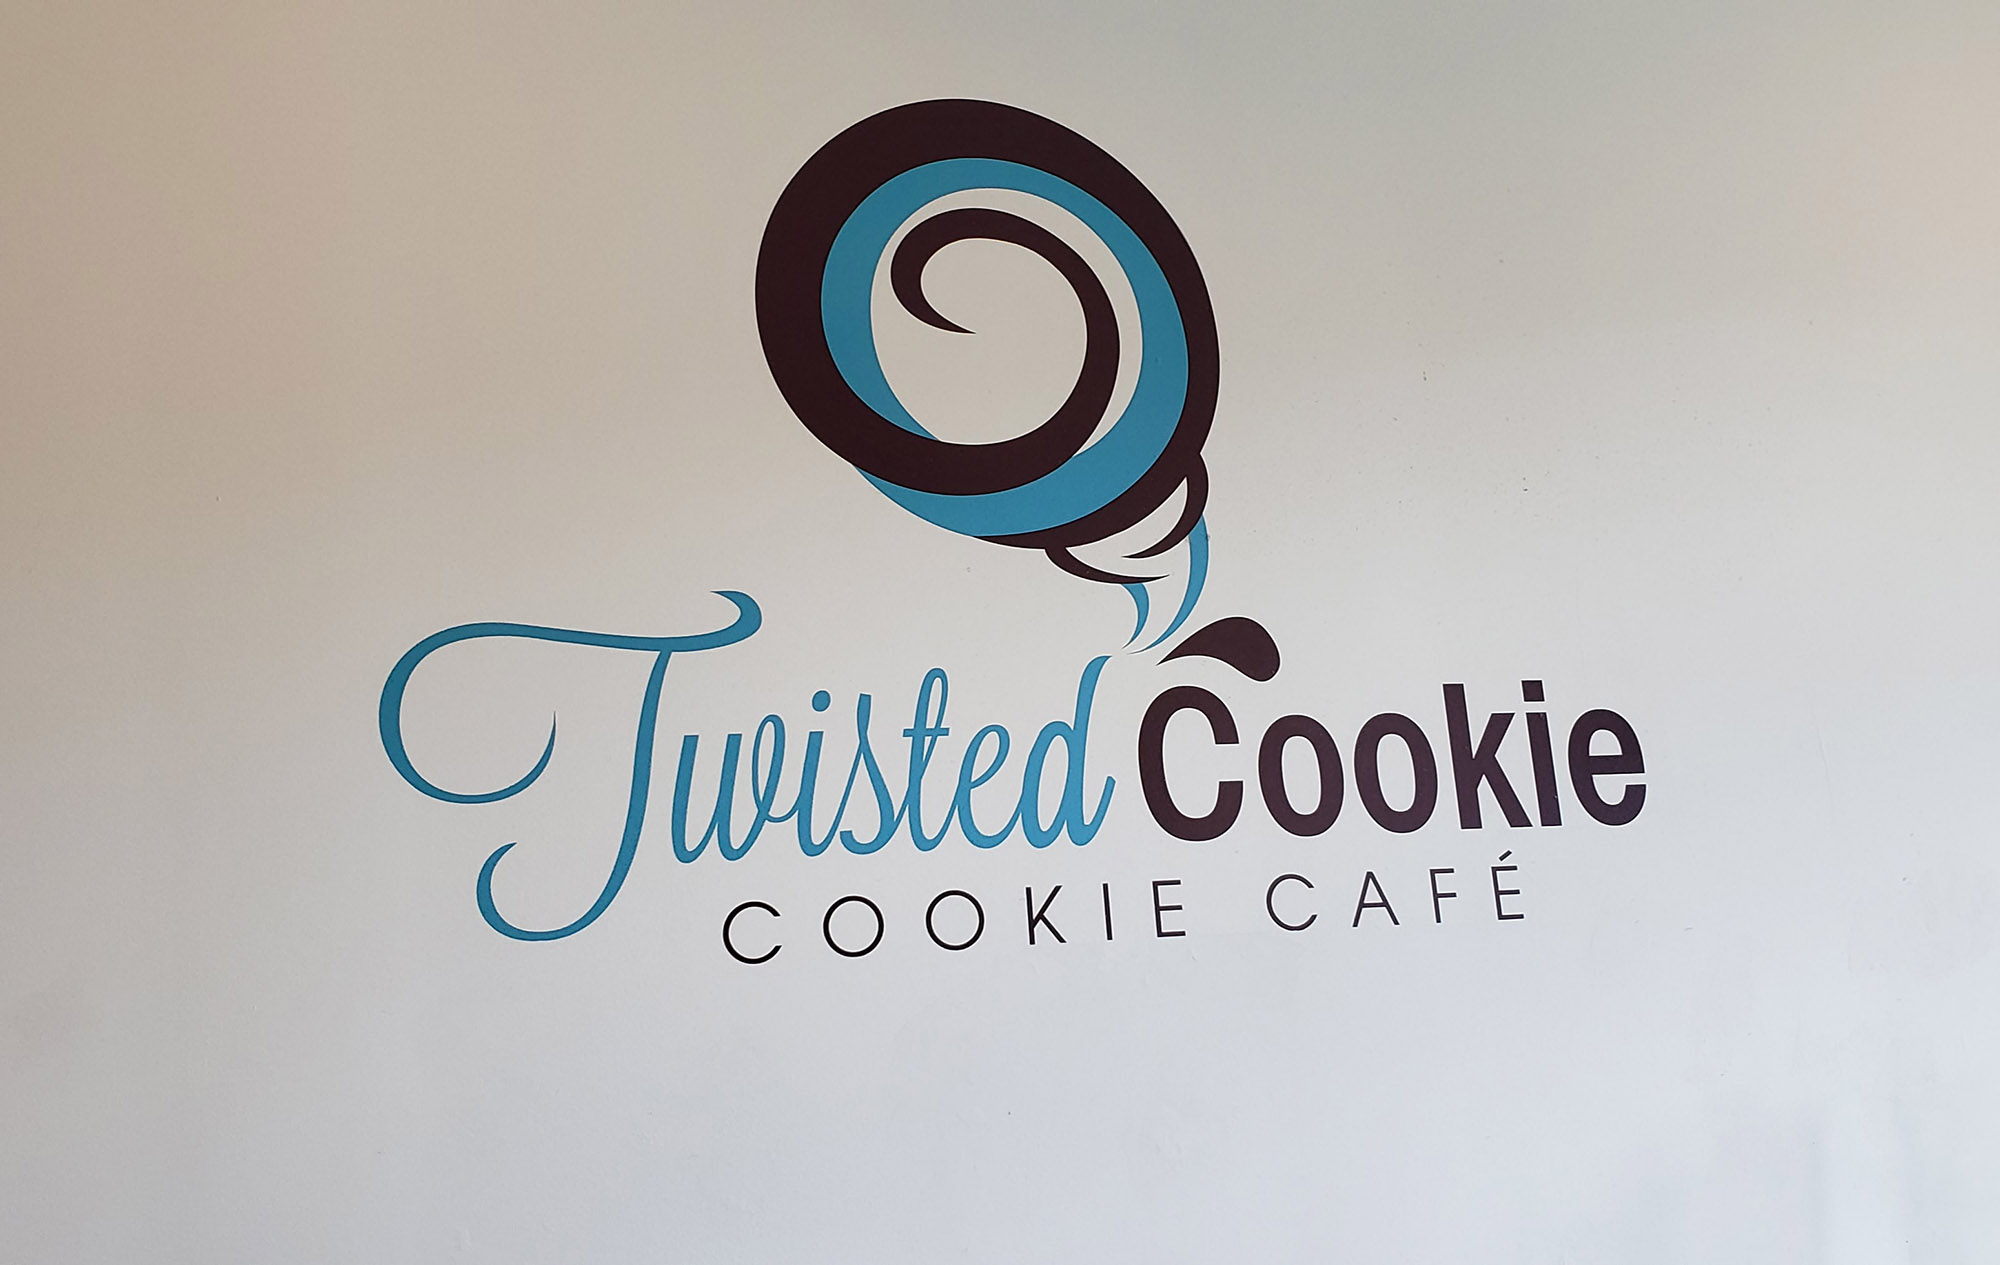 Twisted Cookie